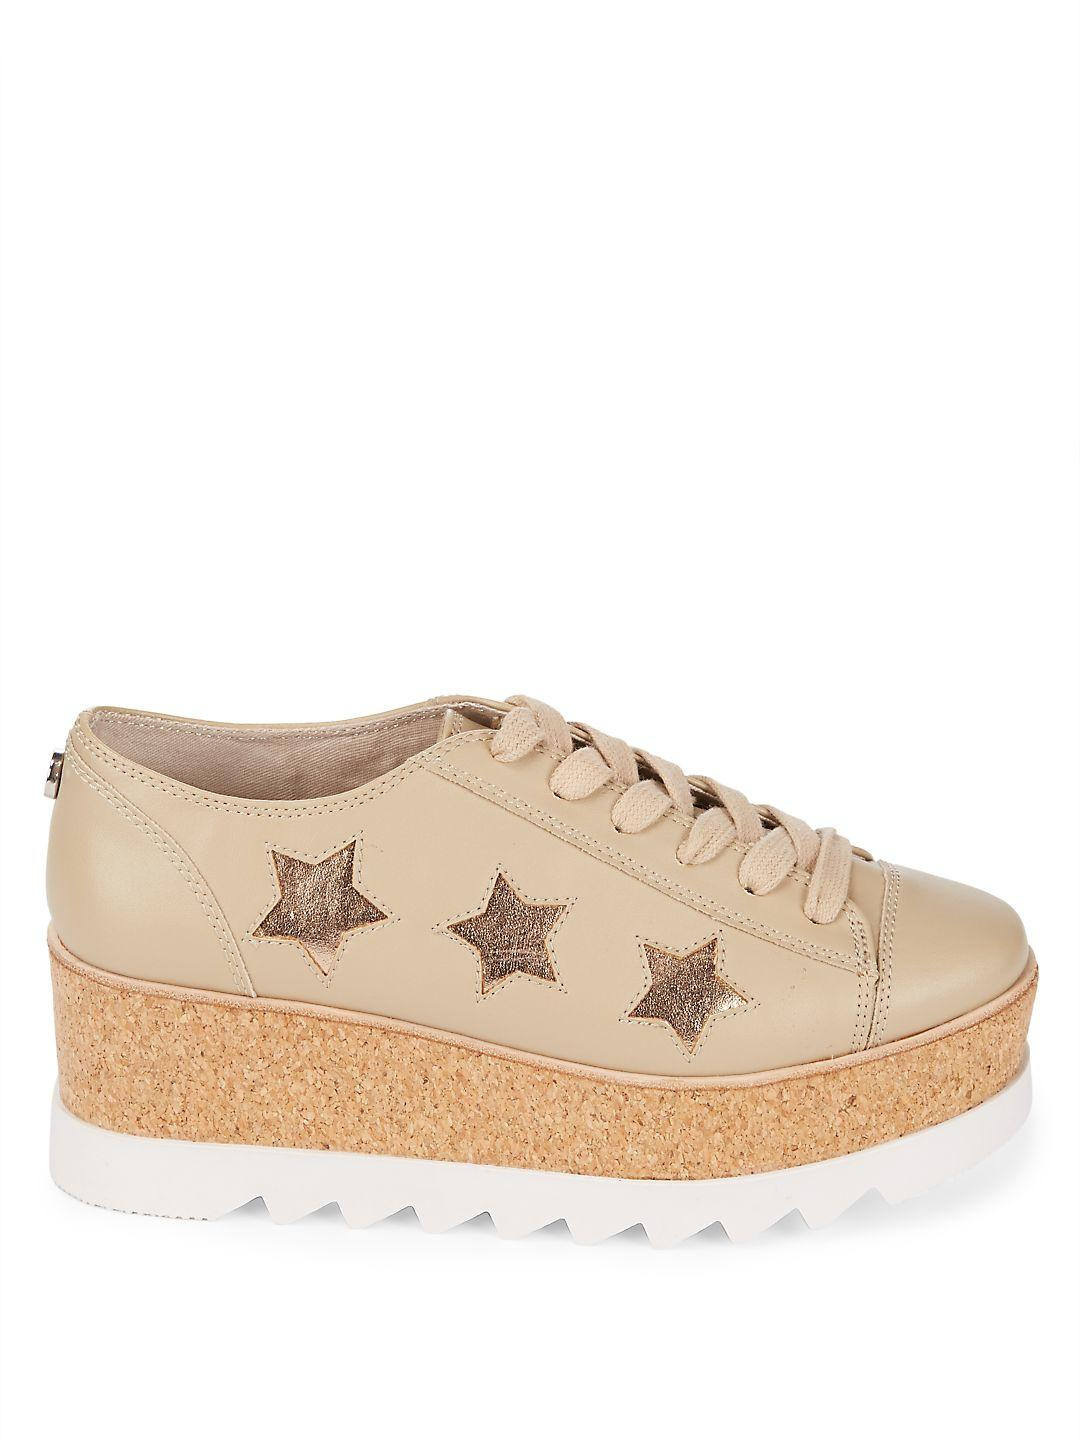 Steve Madden Kaya Low-top Platform Sneakers in Natural